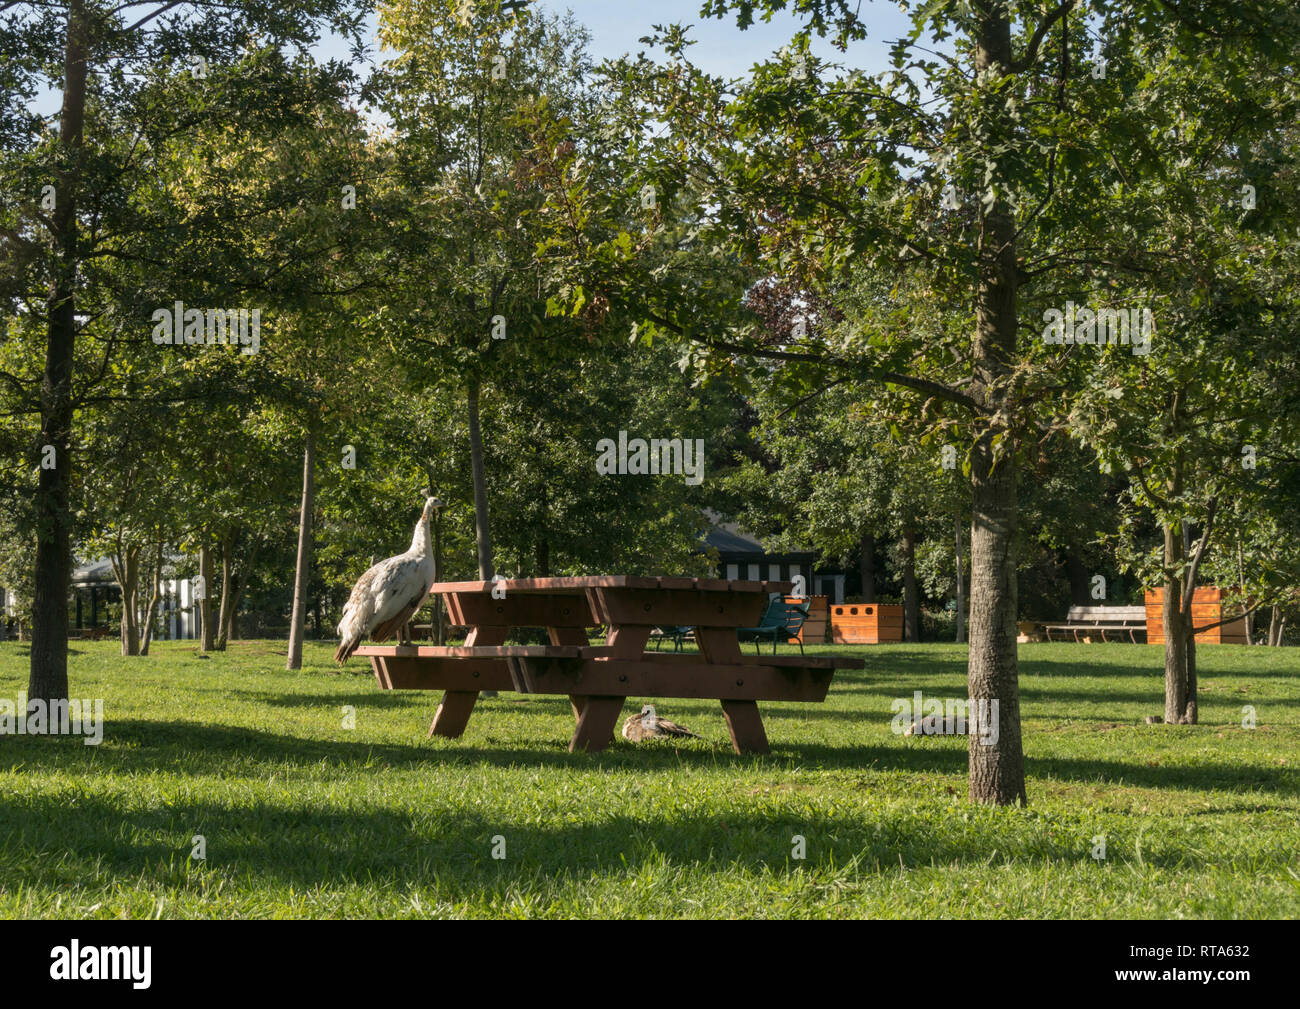 Jardin D Acclimatation High Resolution Stock Photography And Images Alamy